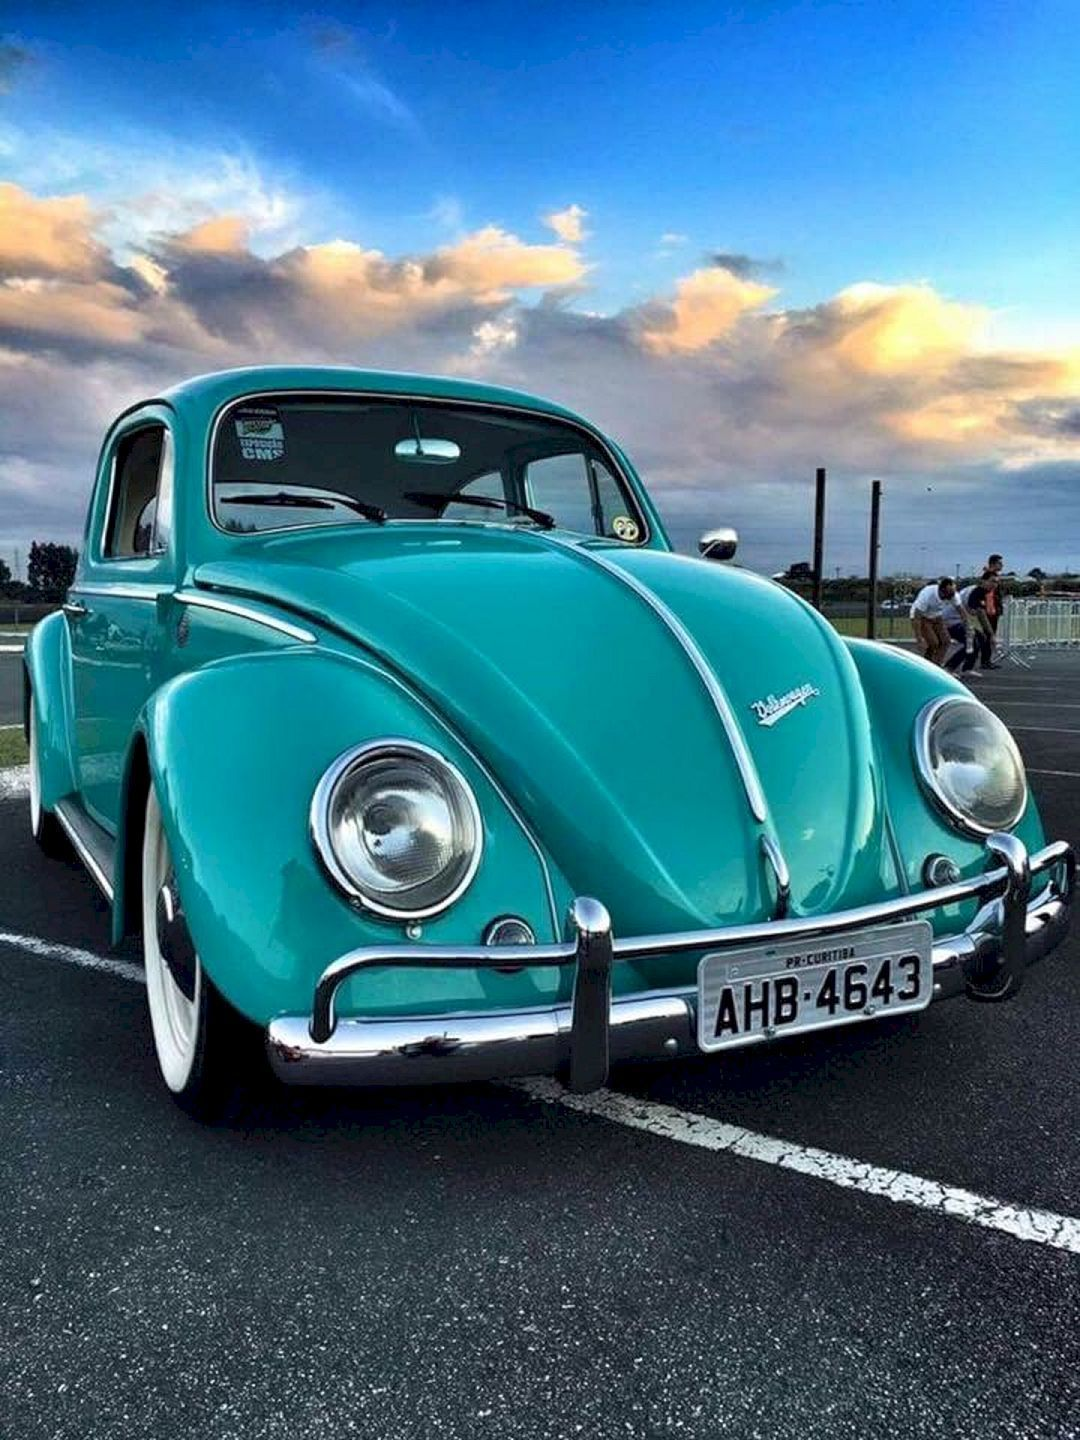 Top Vintage Volkswagen Vehicle and Accessories Collections Items No 10